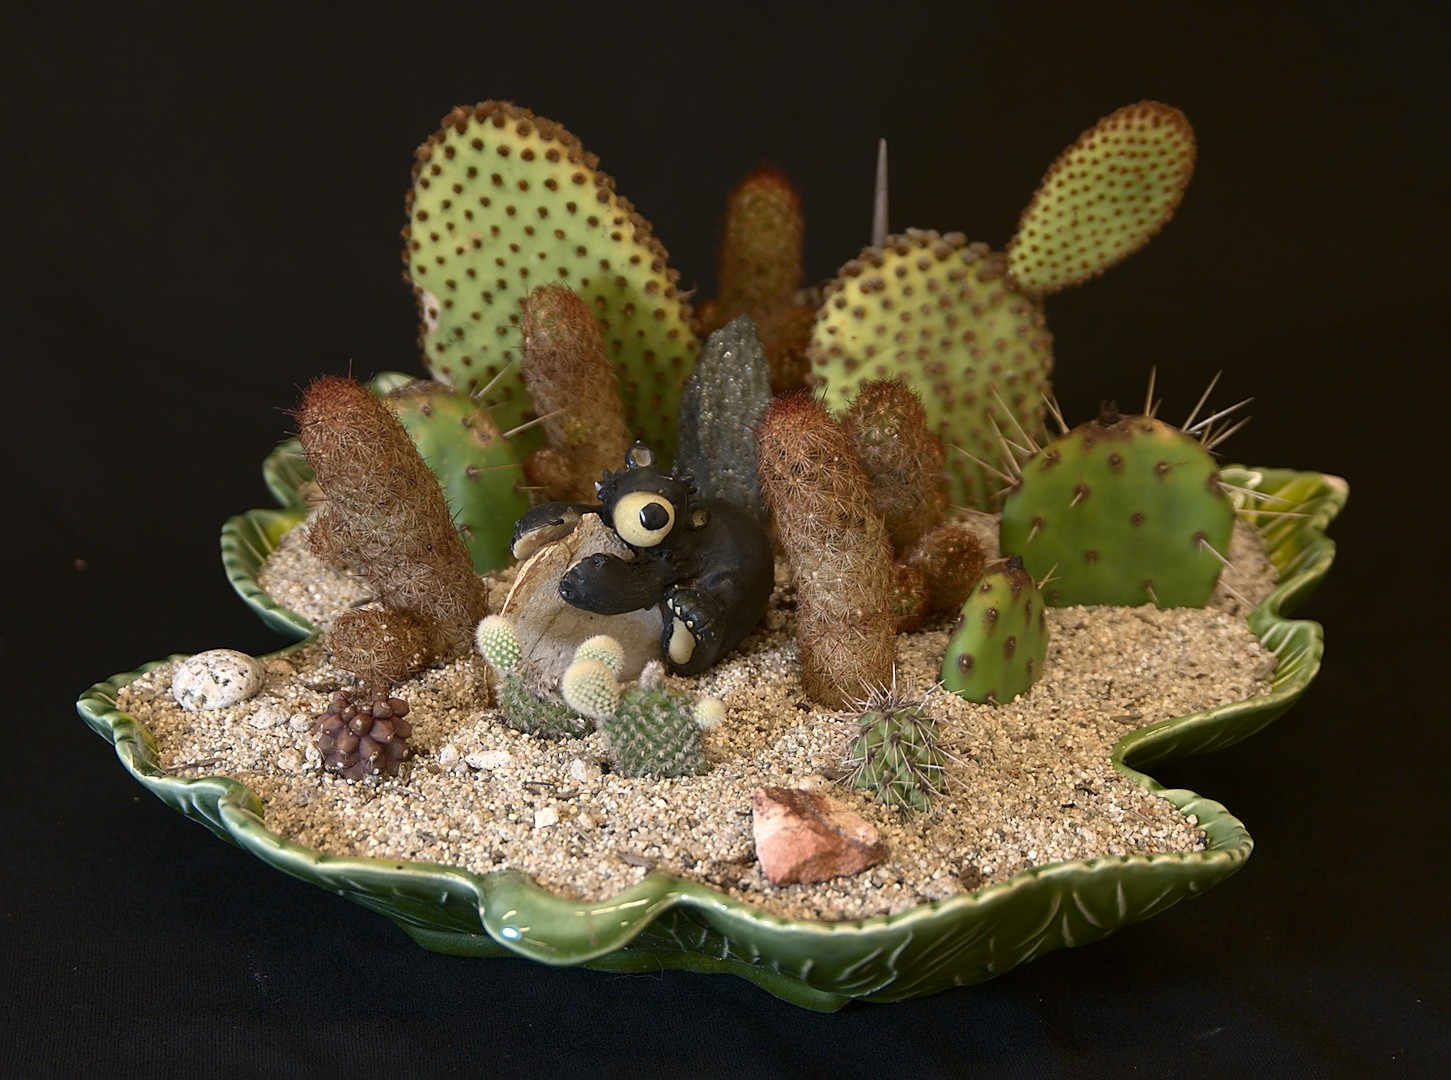 SCCSS 2019 May - Winner Open Cactus - Phyllis DeCrescenzo